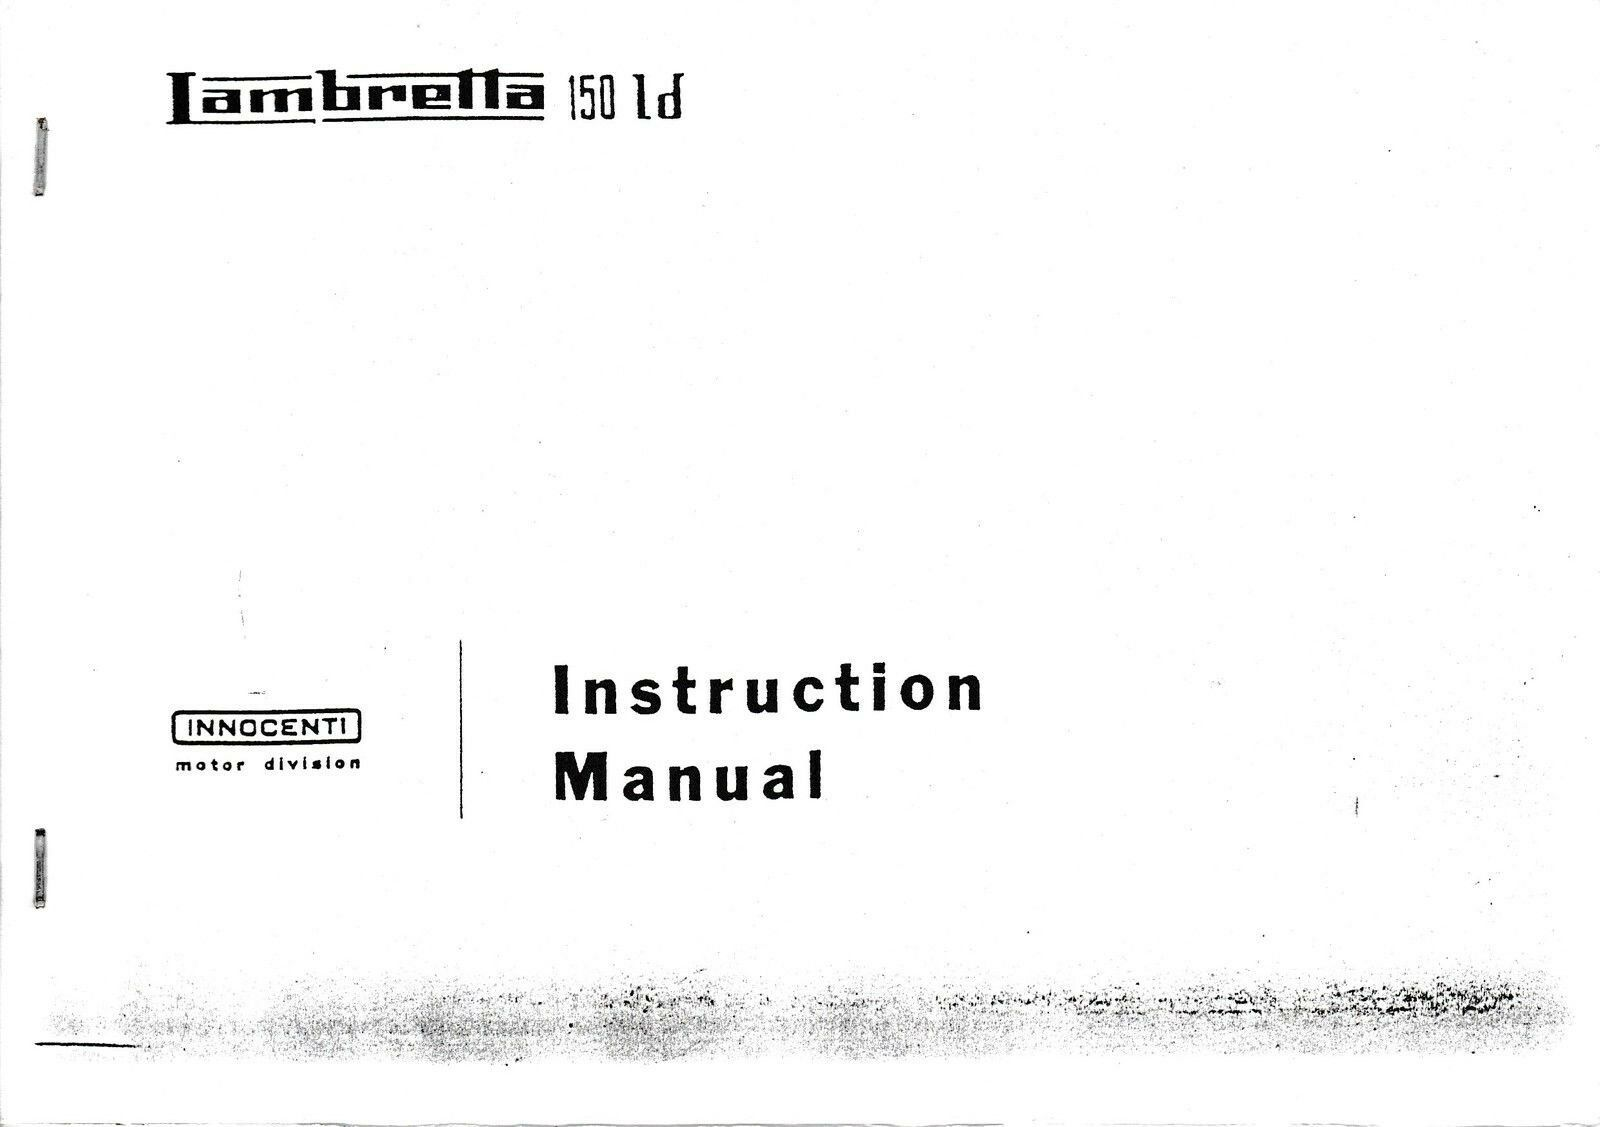 Lambretta 150 Ld Scooter Instruction Manual 1 of 1Only 1 available ...